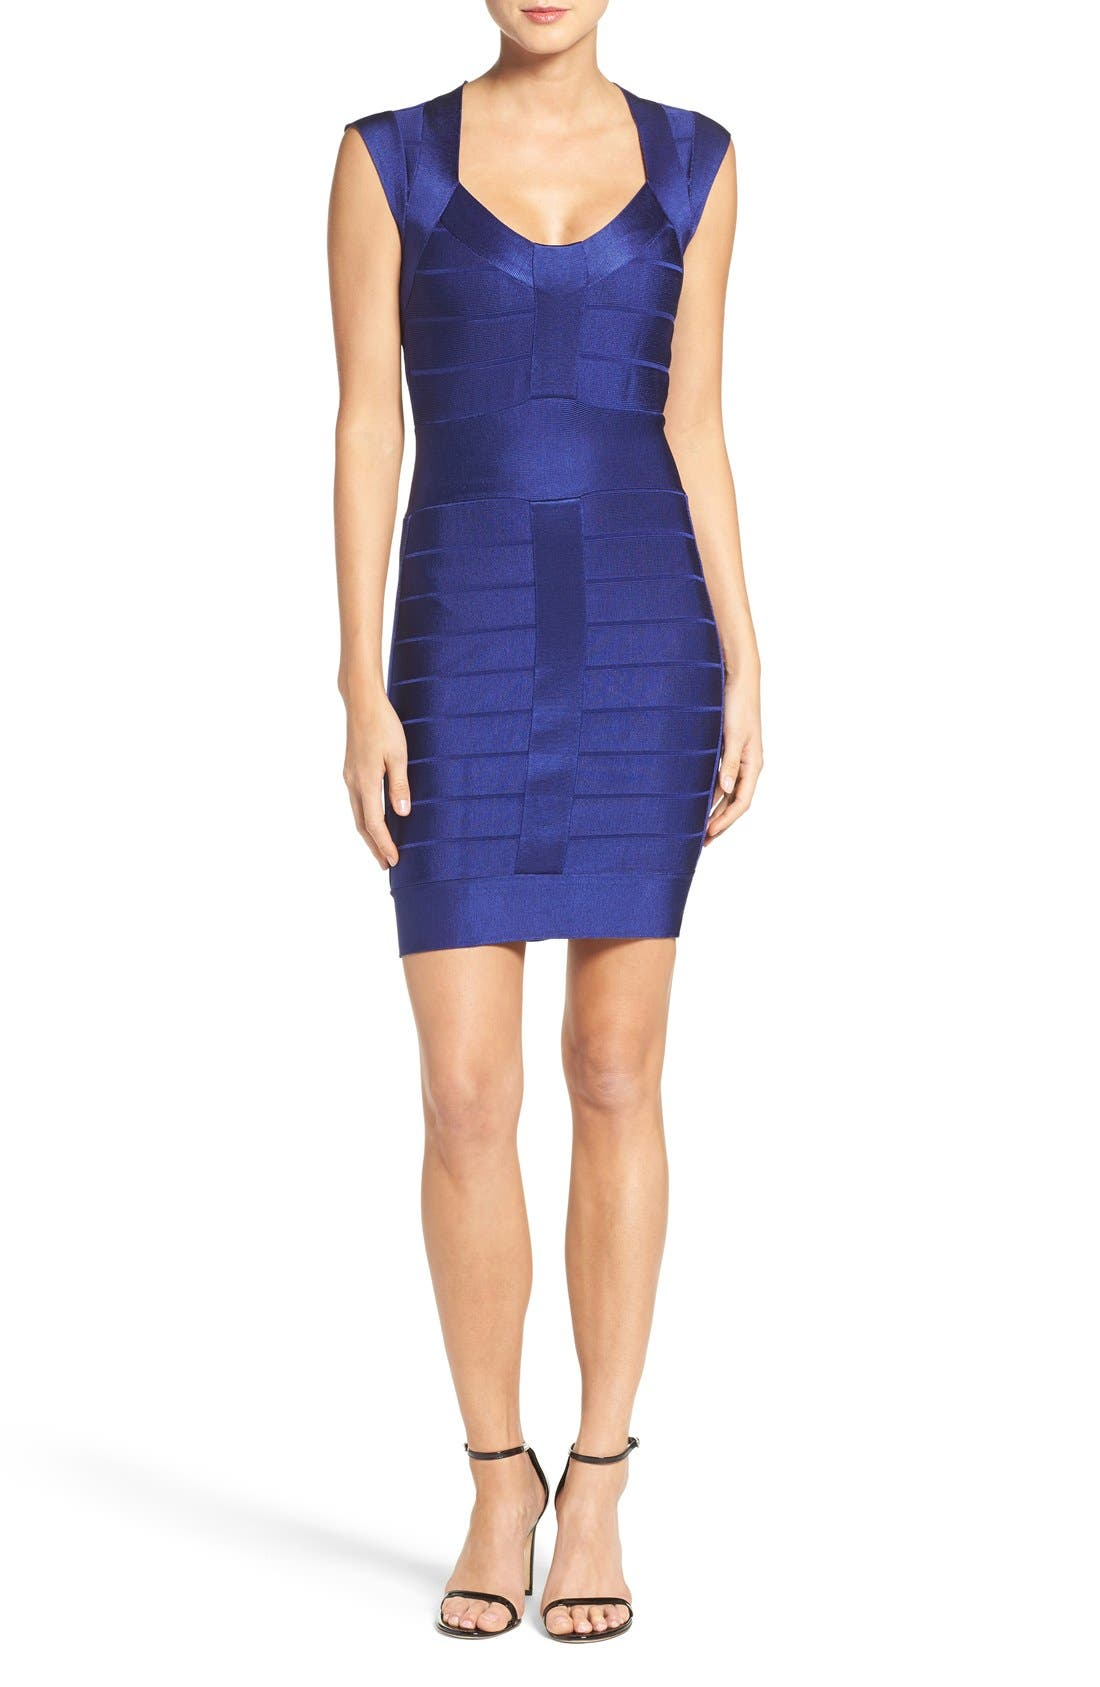 Spotlight Bandage Dress,                             Alternate thumbnail 9, color,                             431